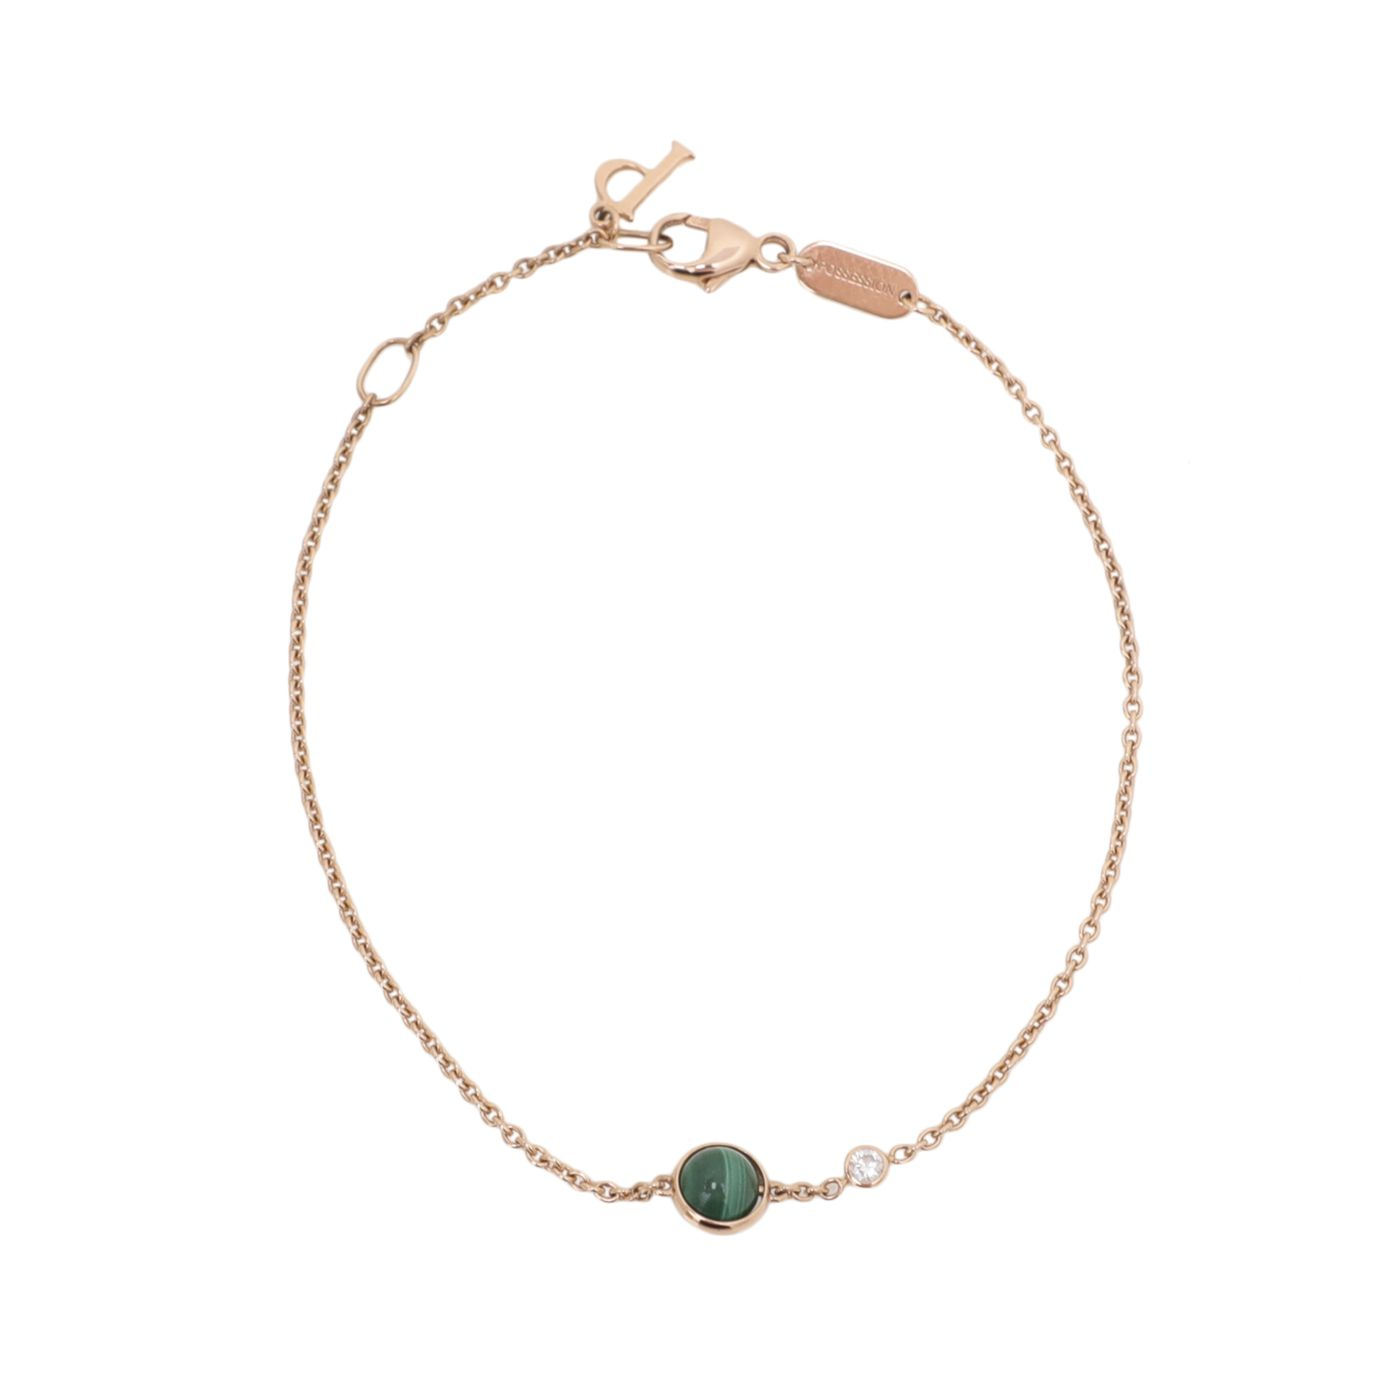 Piaget 18K Rose Gold Malachite Bead Diamond Possession Chain Bracelet